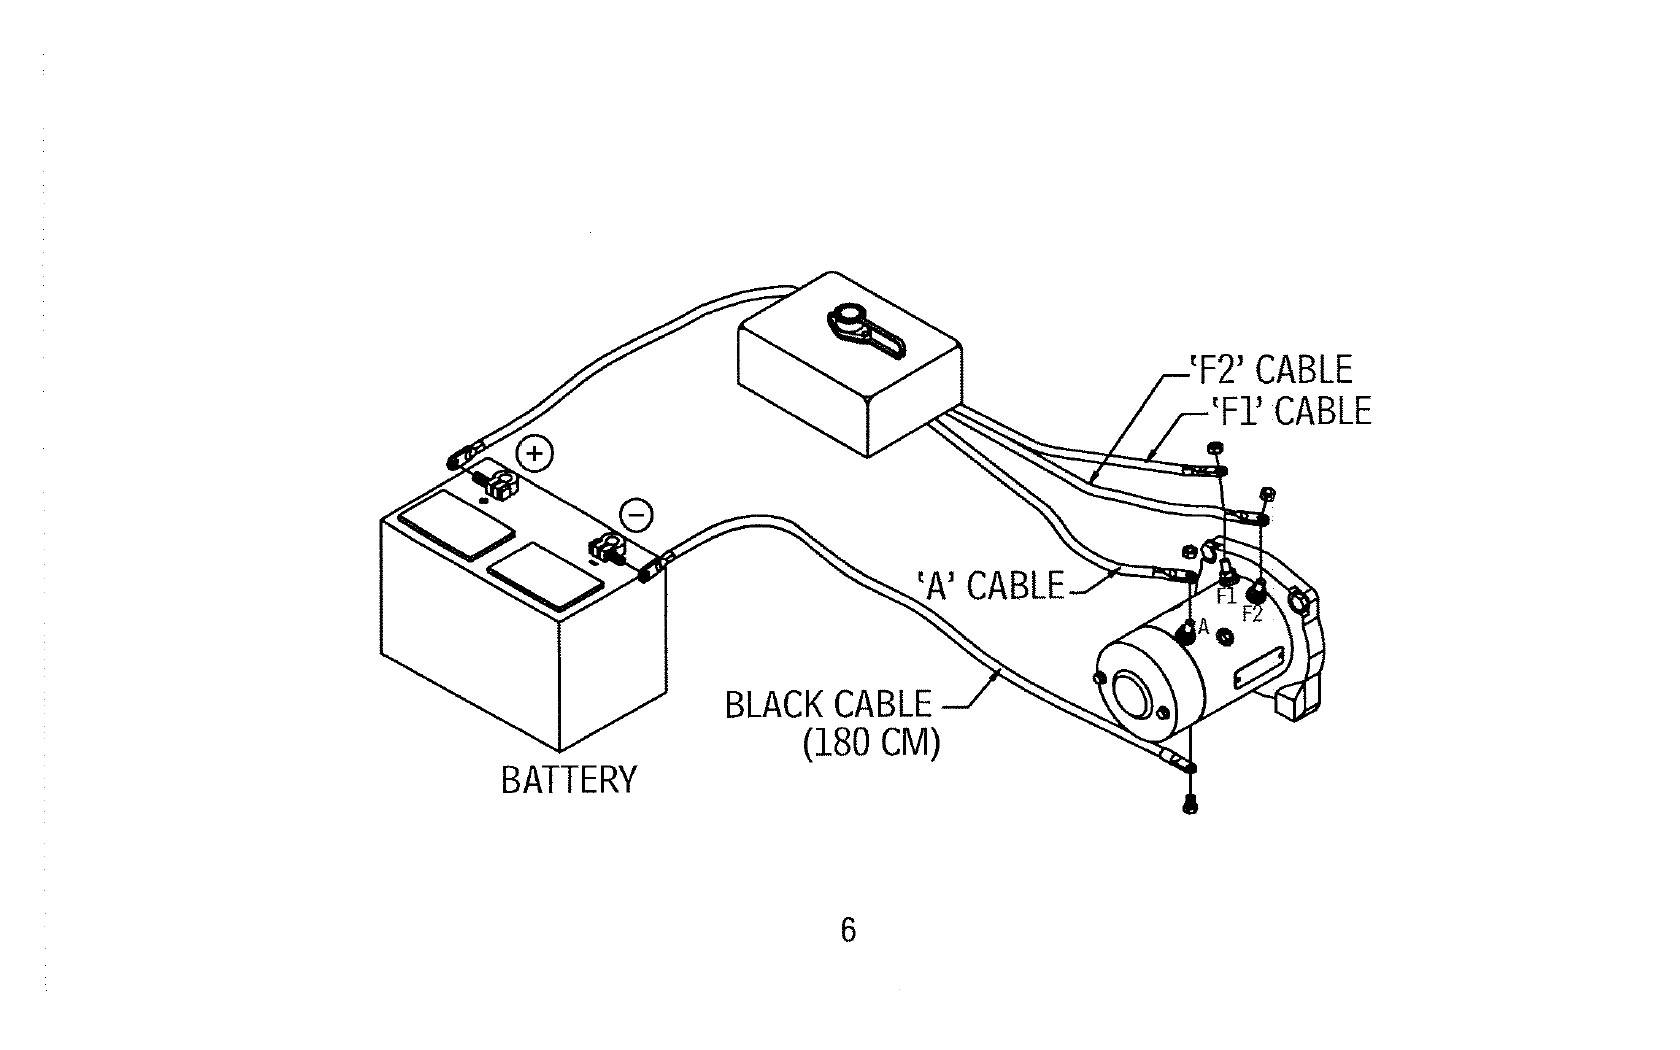 warn_cables warn a2000 winch wiring diagram warn winch motor wiring diagram warn m8000 winch wiring diagram at cita.asia